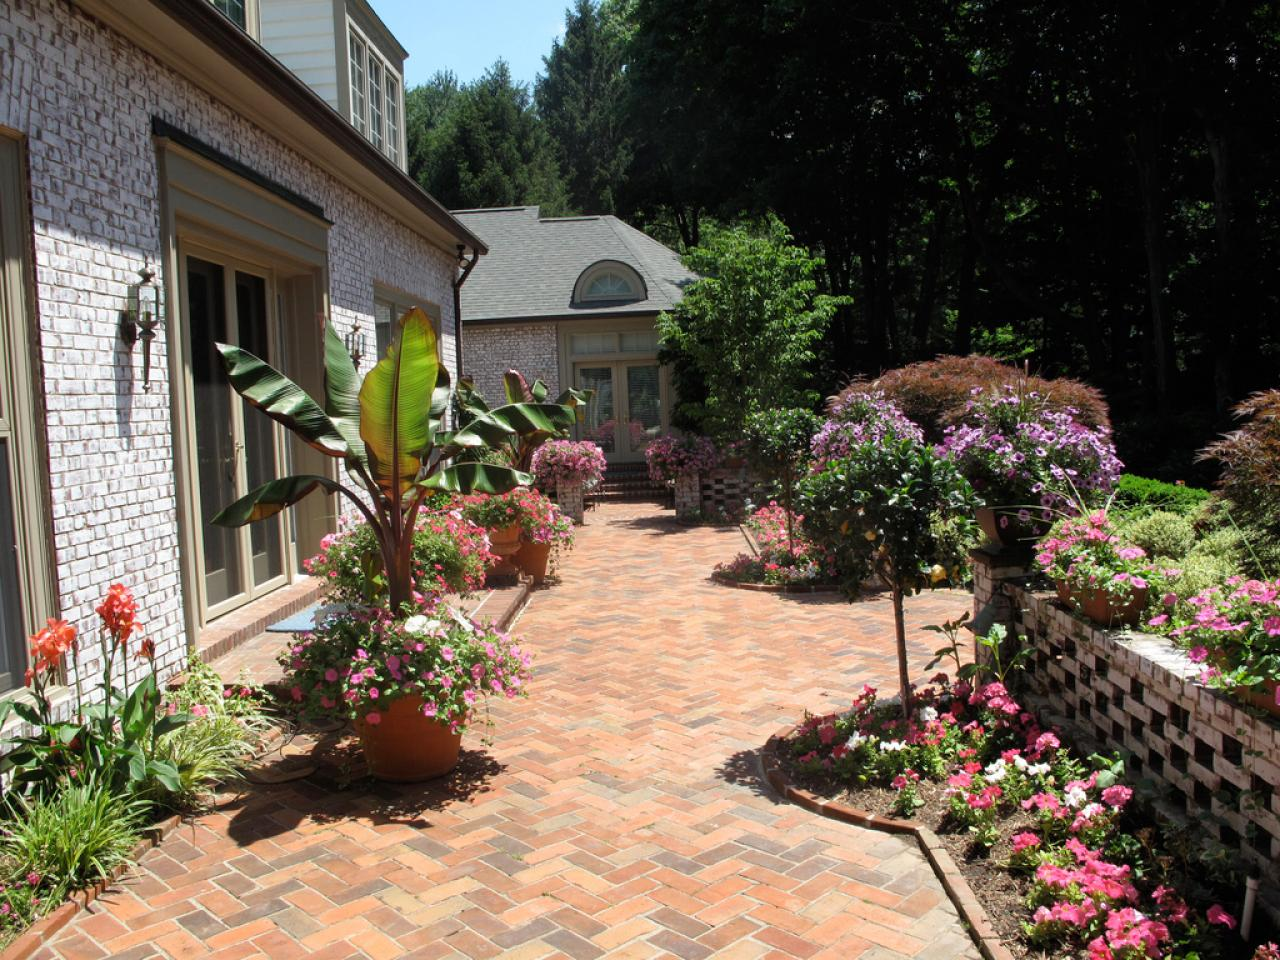 Image of: Brick paver patio ideas Pictures